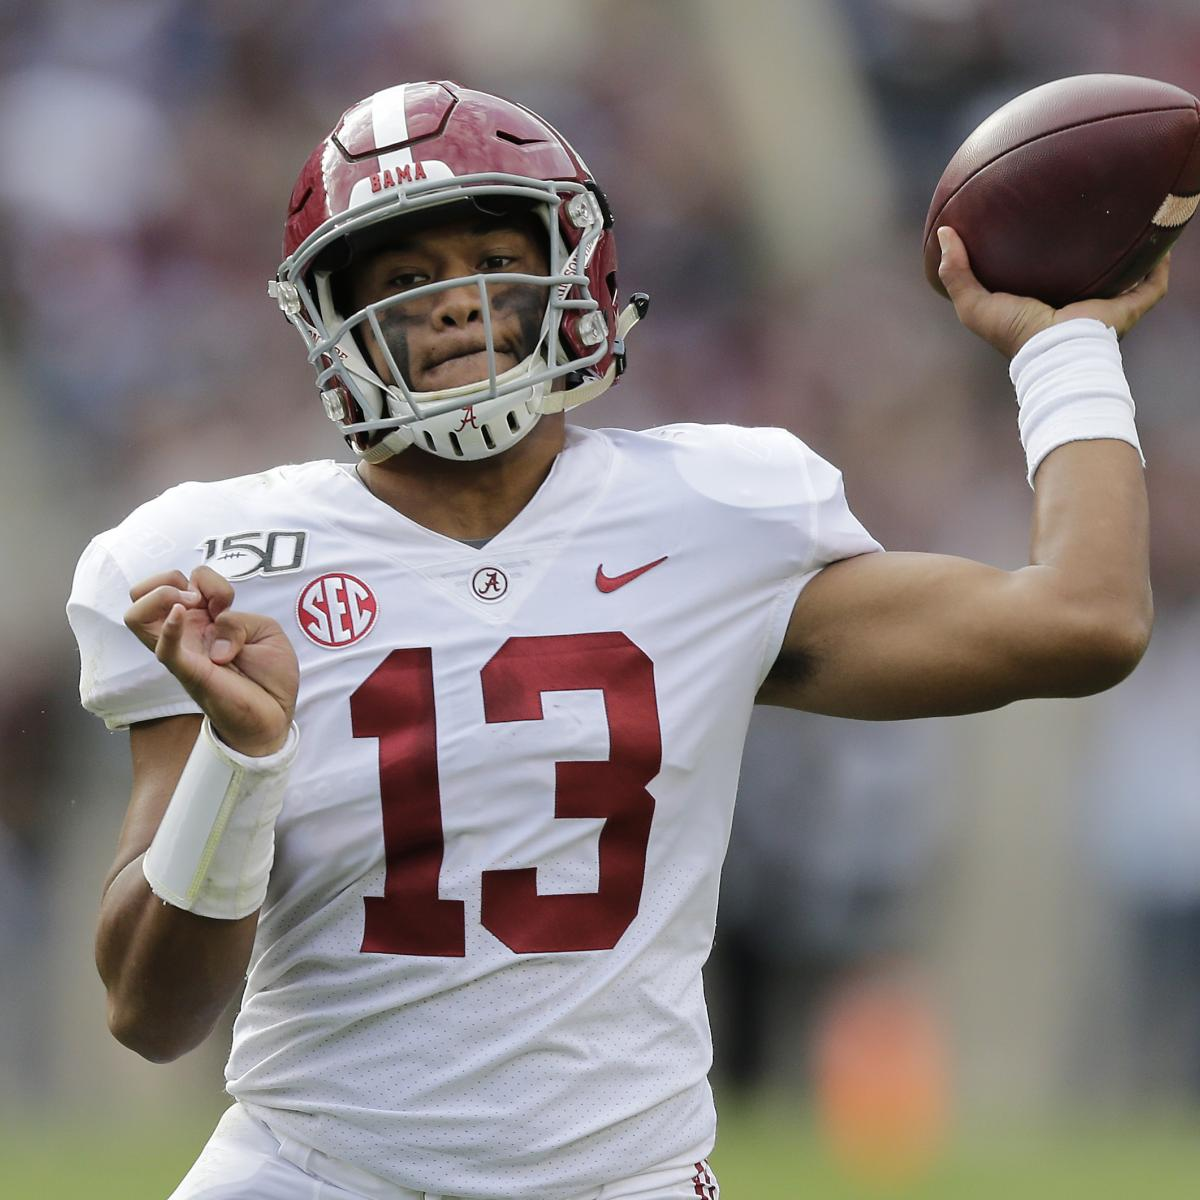 2020 NFL Mock Draft: Predictions for Boom-or-Bust Prospects